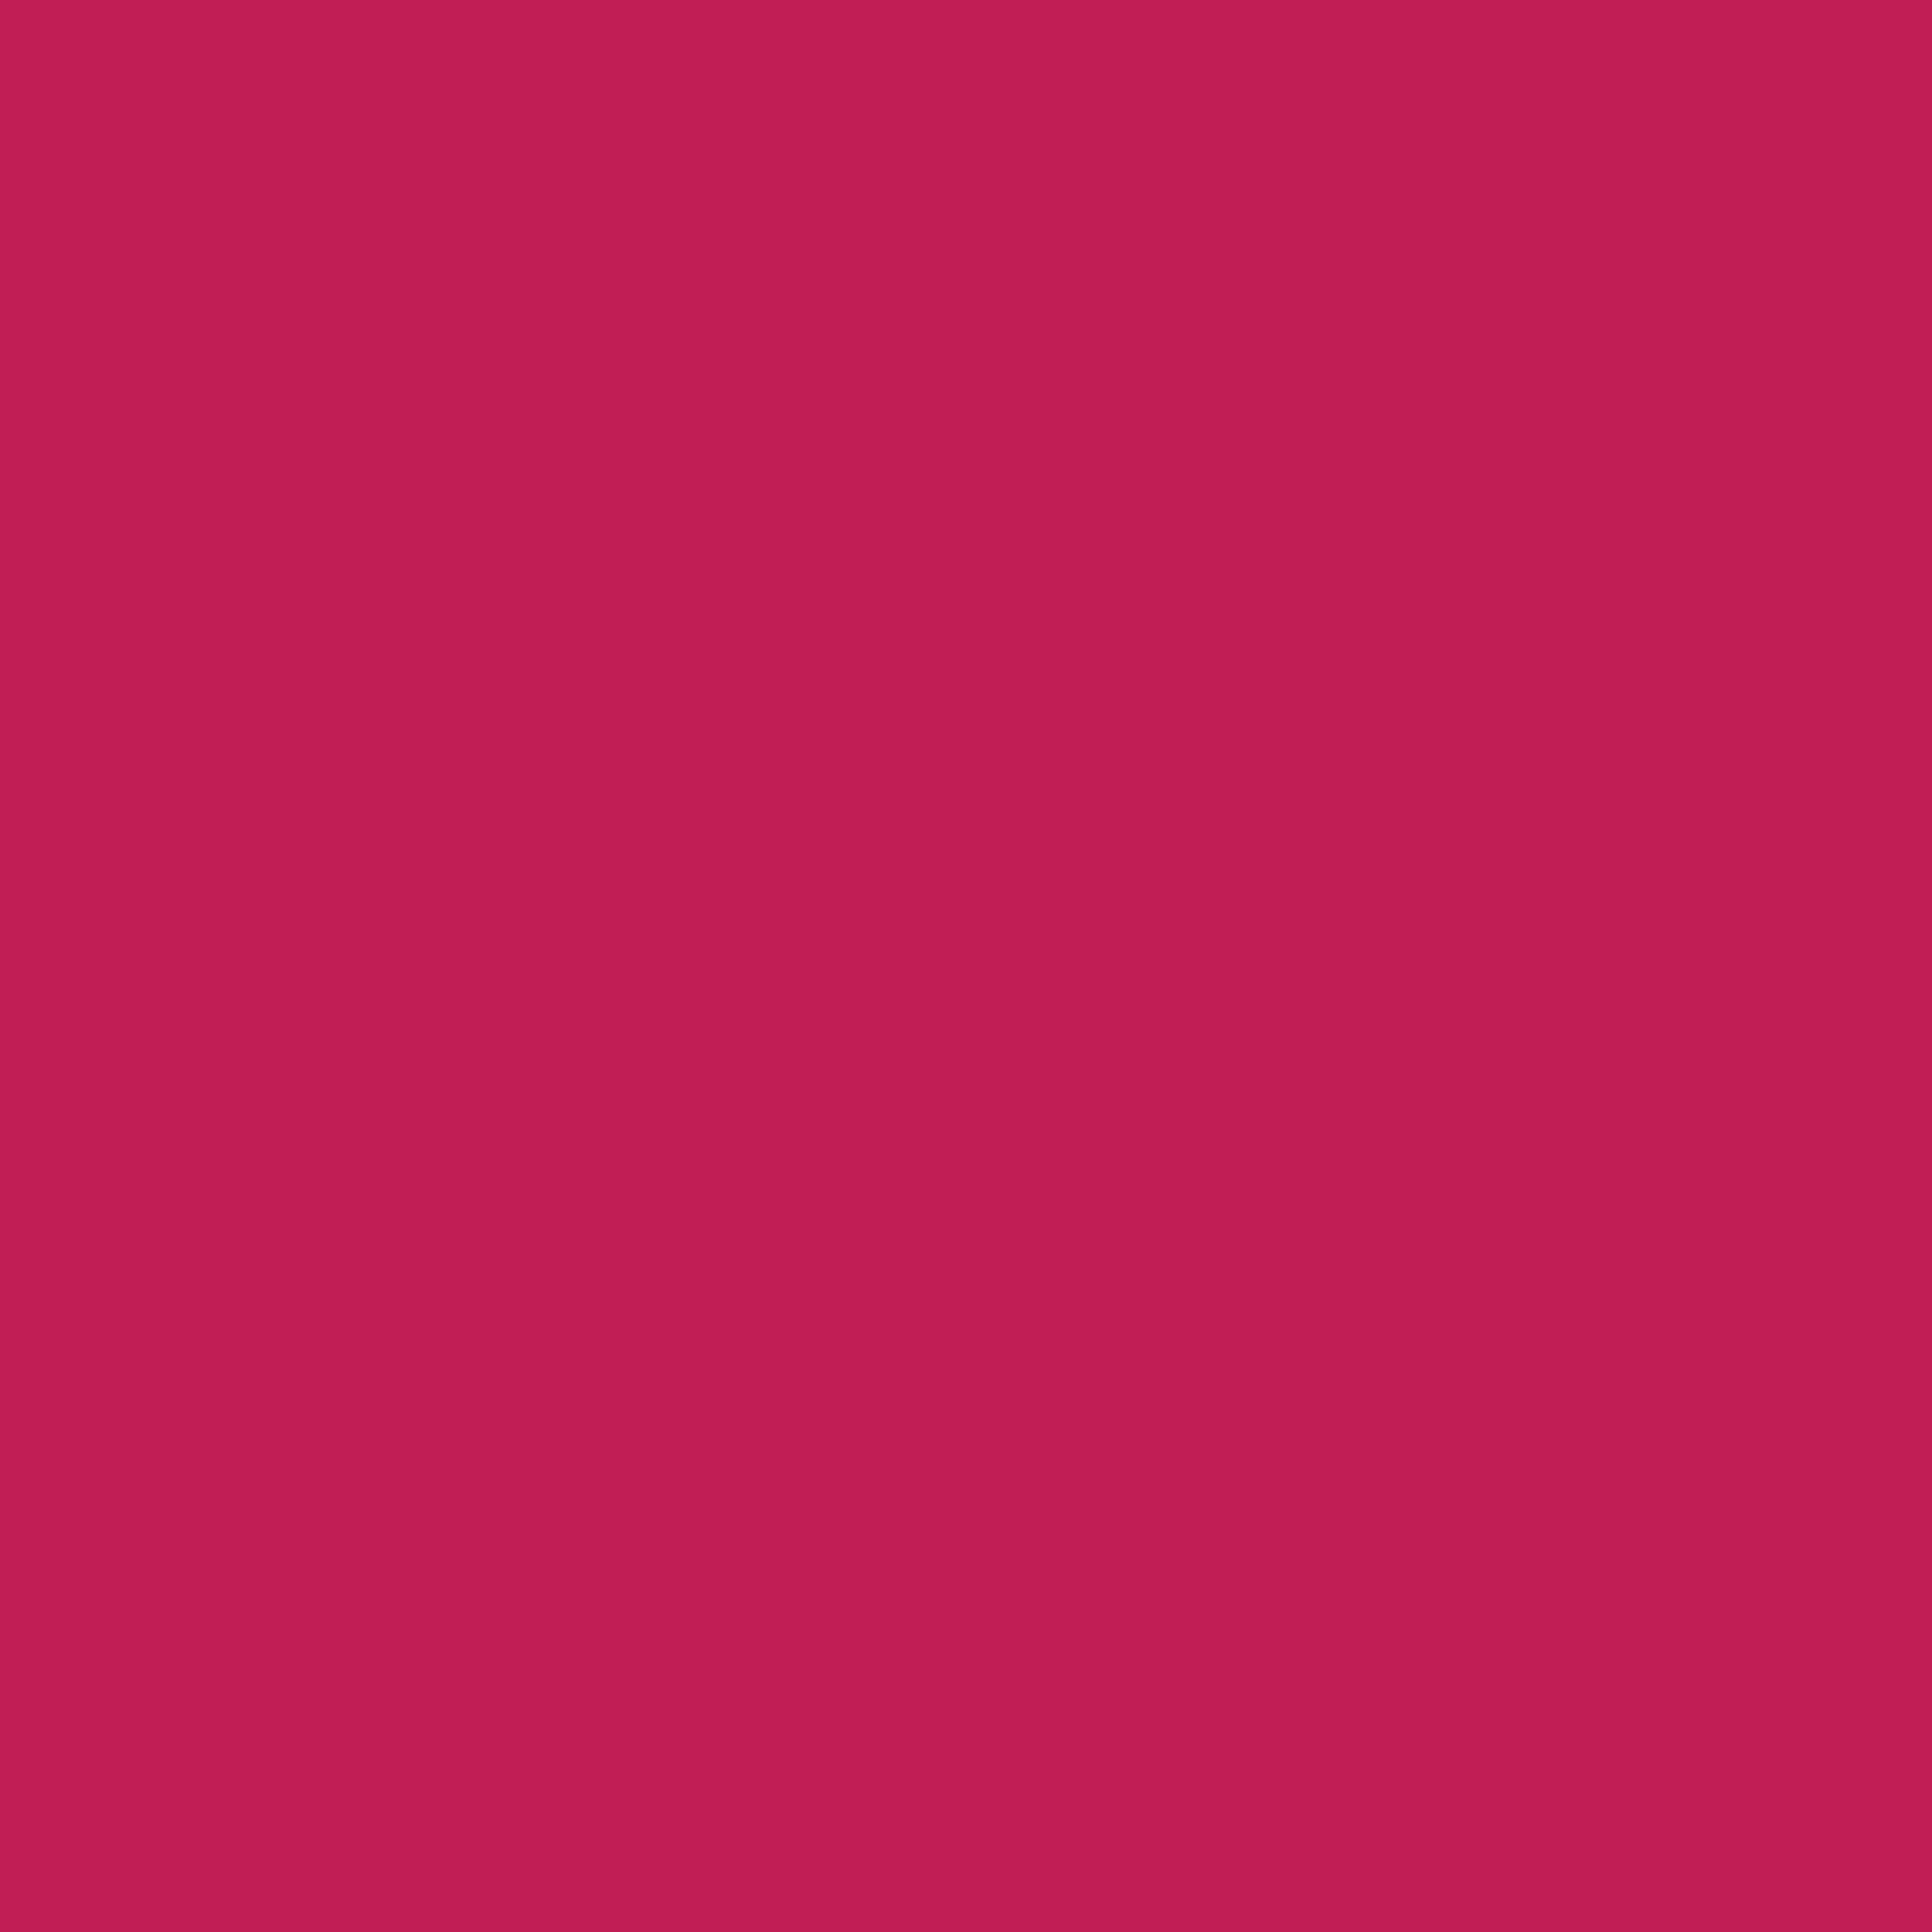 3600x3600 Rose Red Solid Color Background